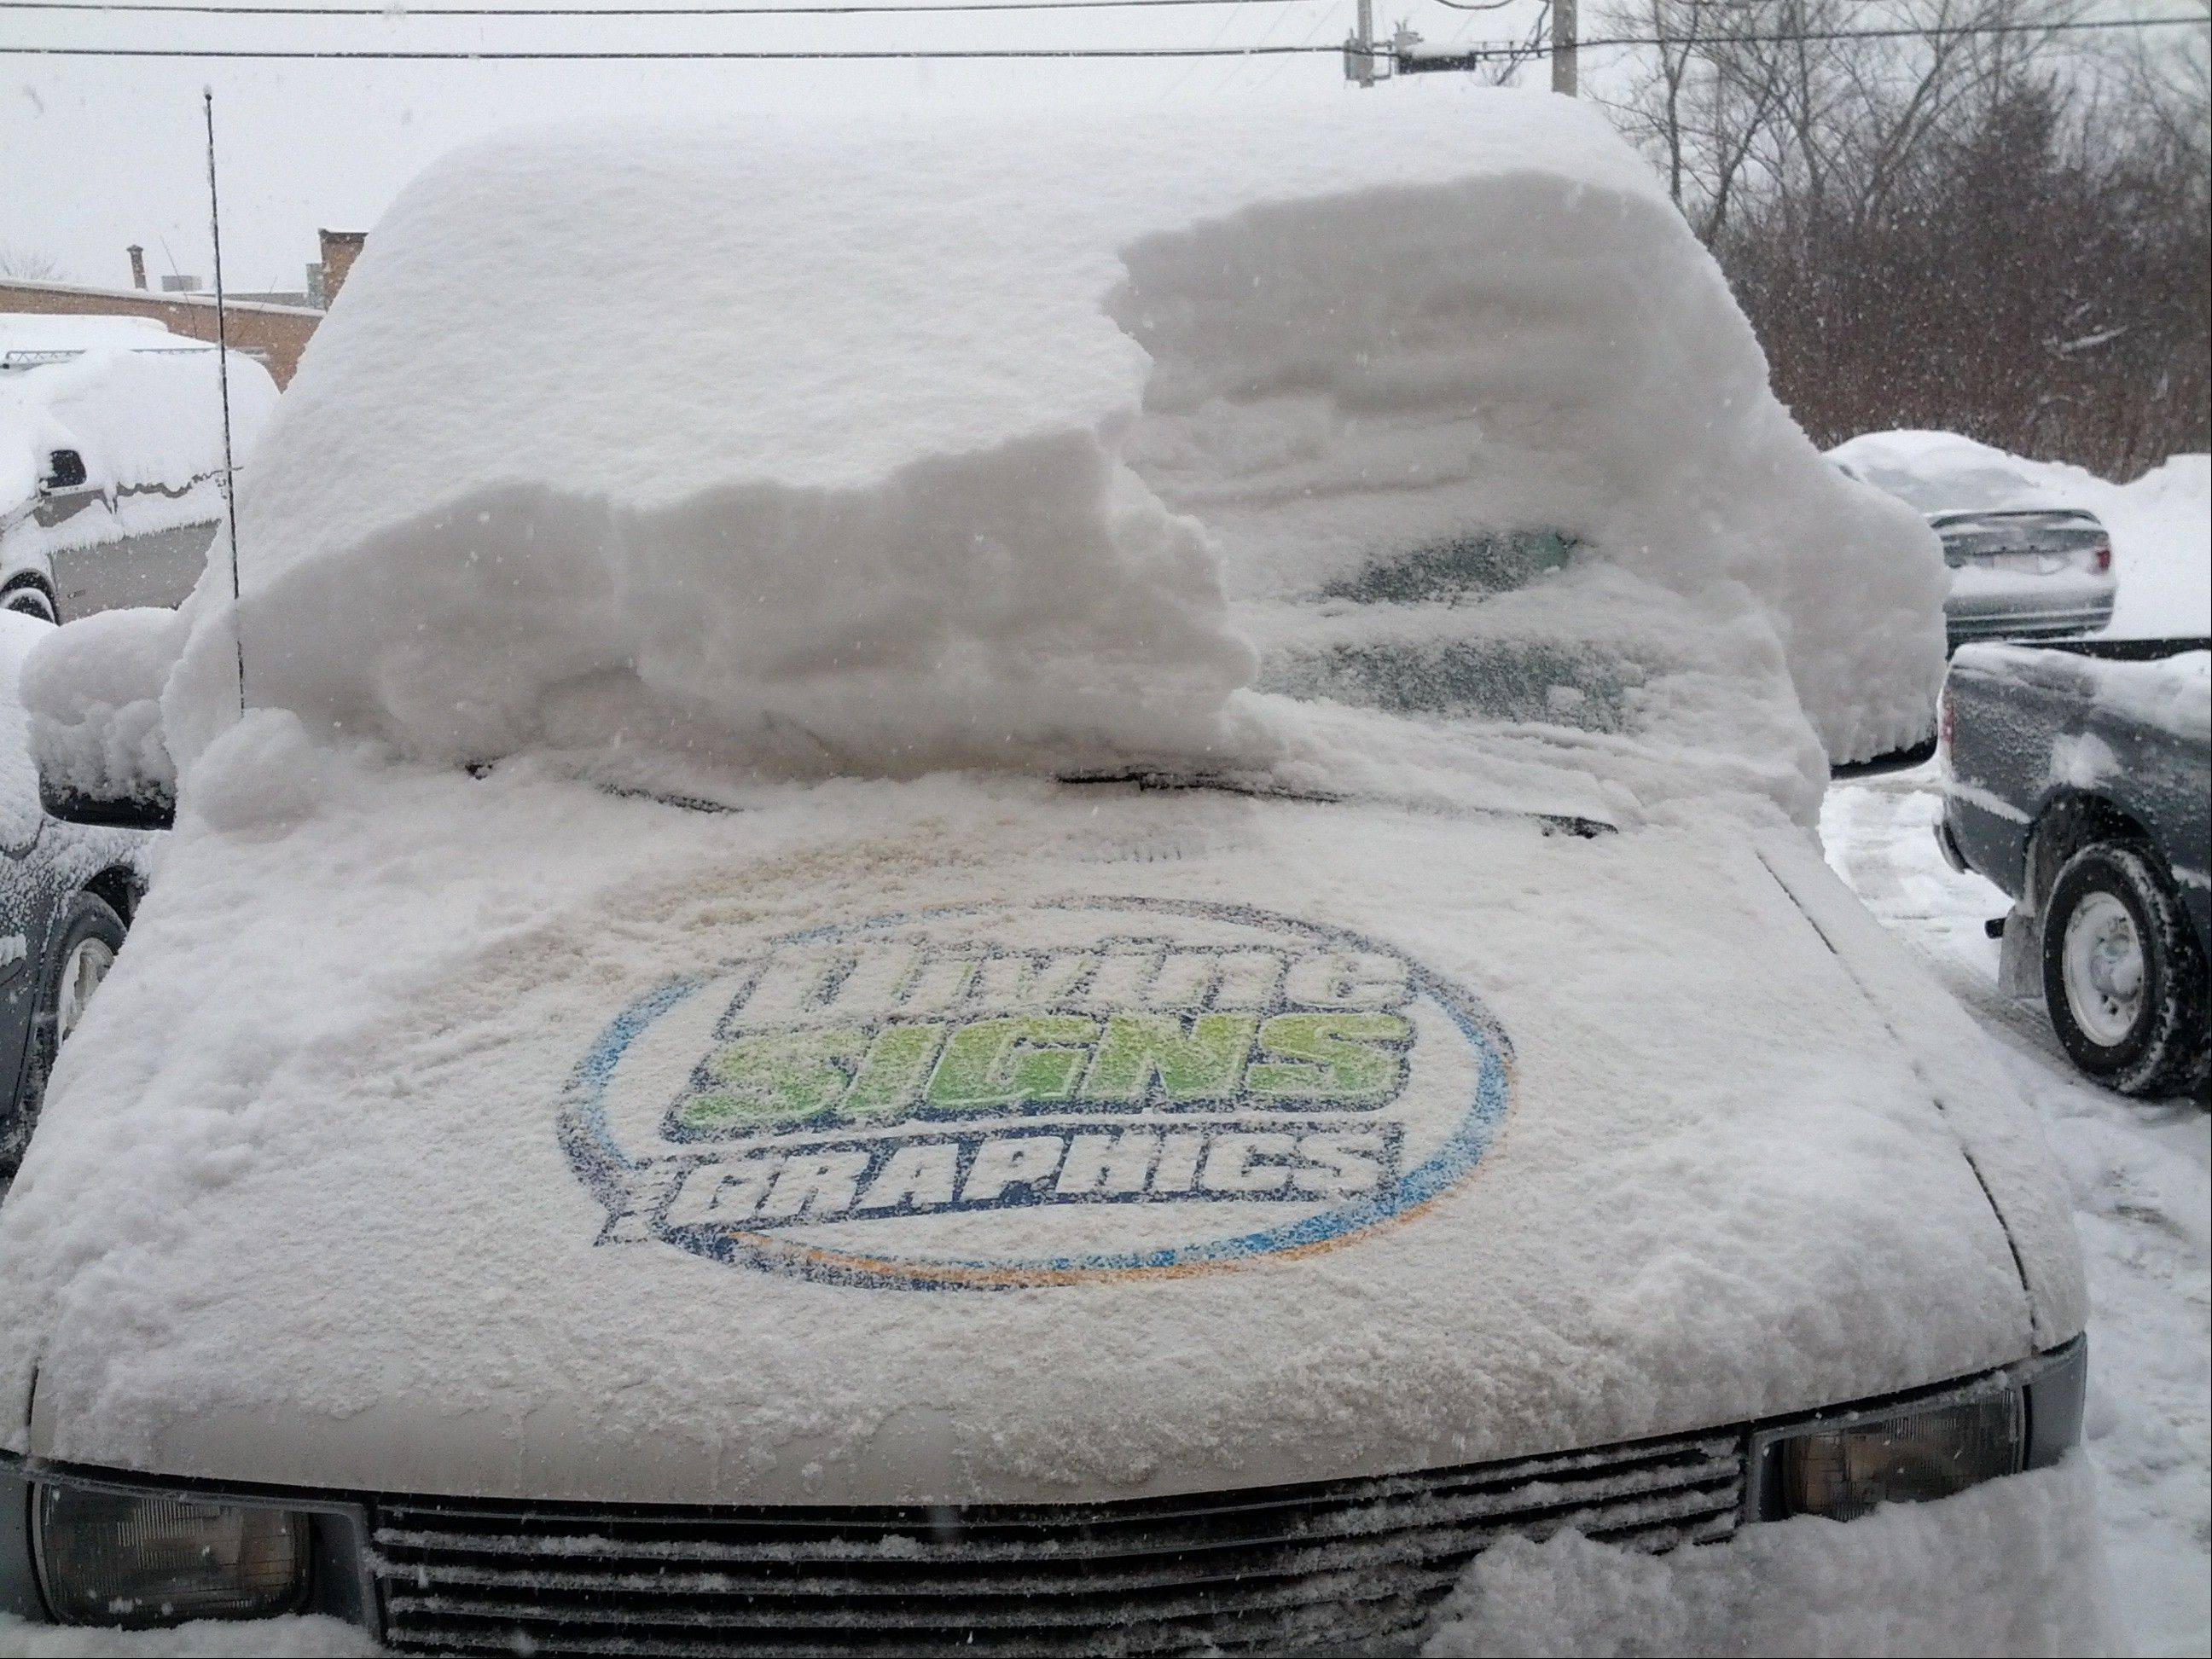 The snow-covered van owned by Divine Signs and Graphics in Schaumburg.